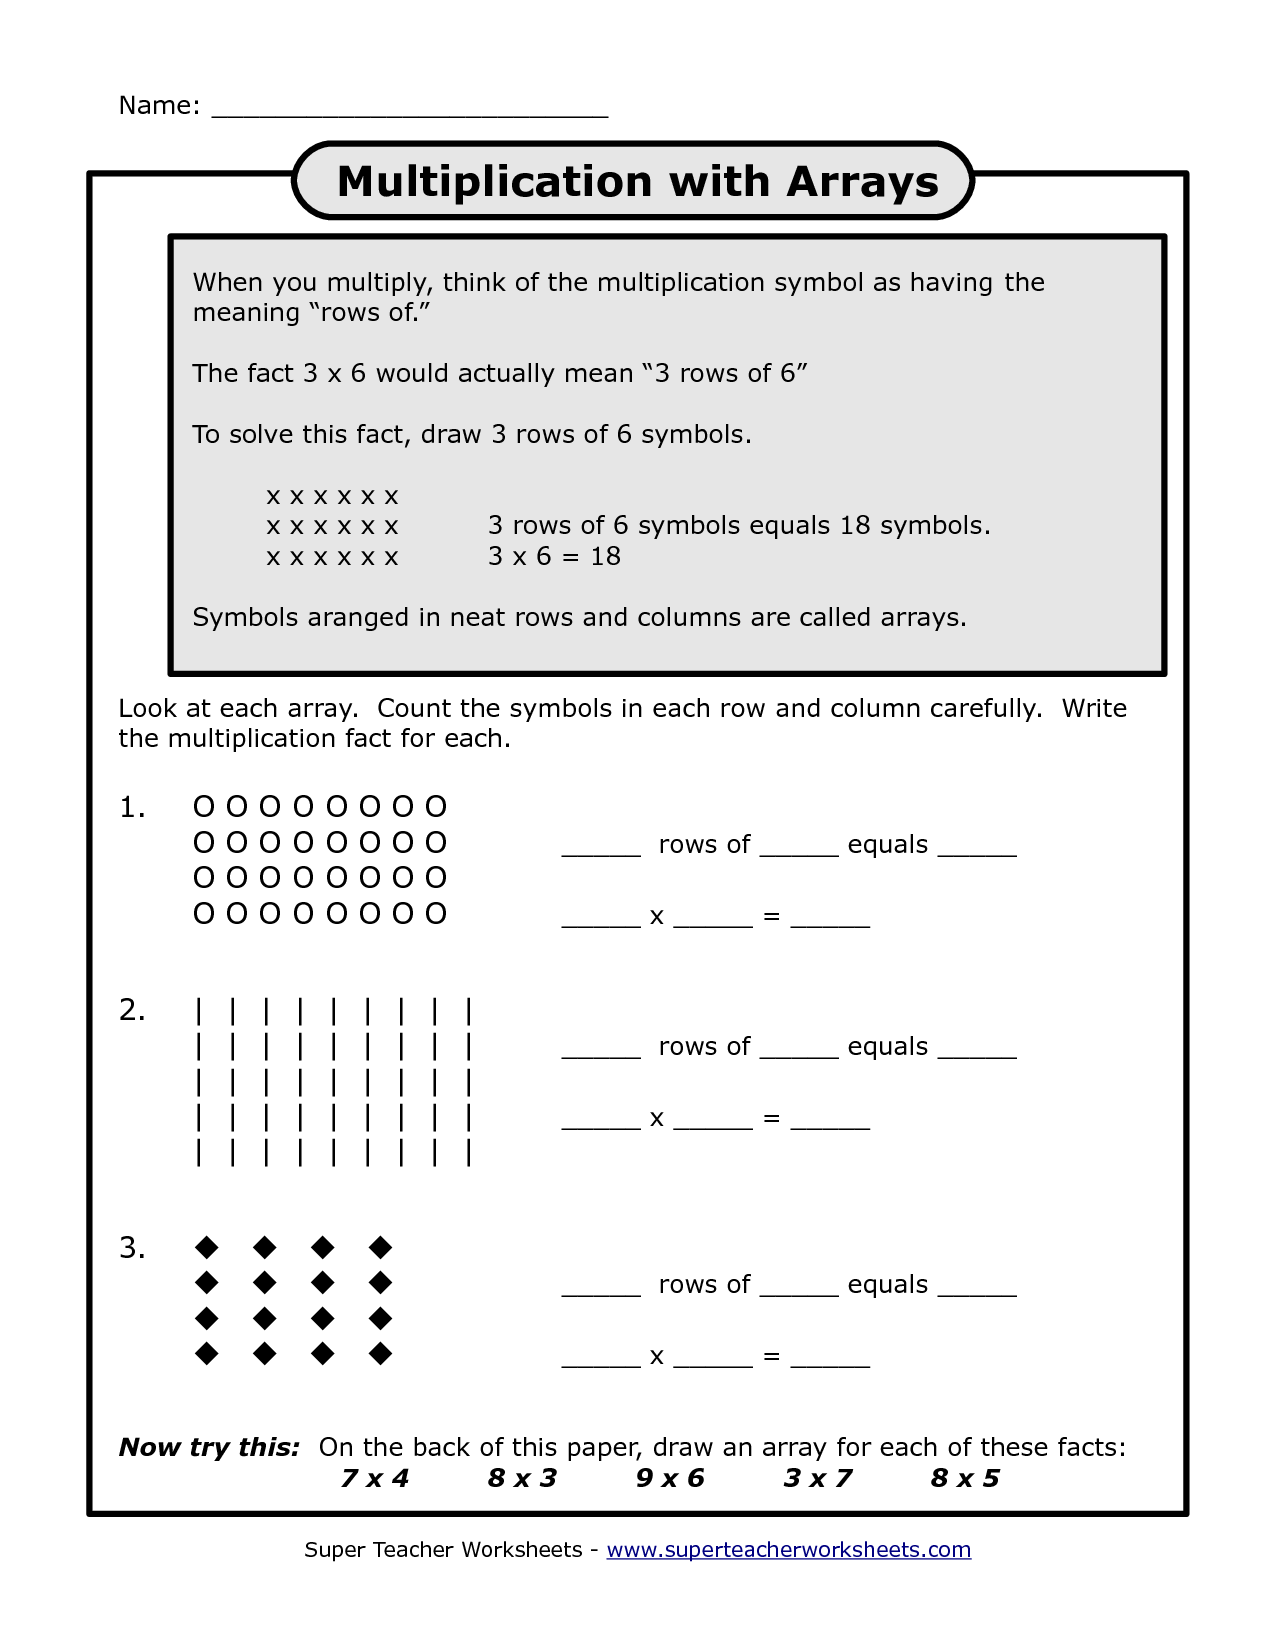 hight resolution of Multiplication Worksheets For 12th Grade   Printable Worksheets and  Activities for Teachers